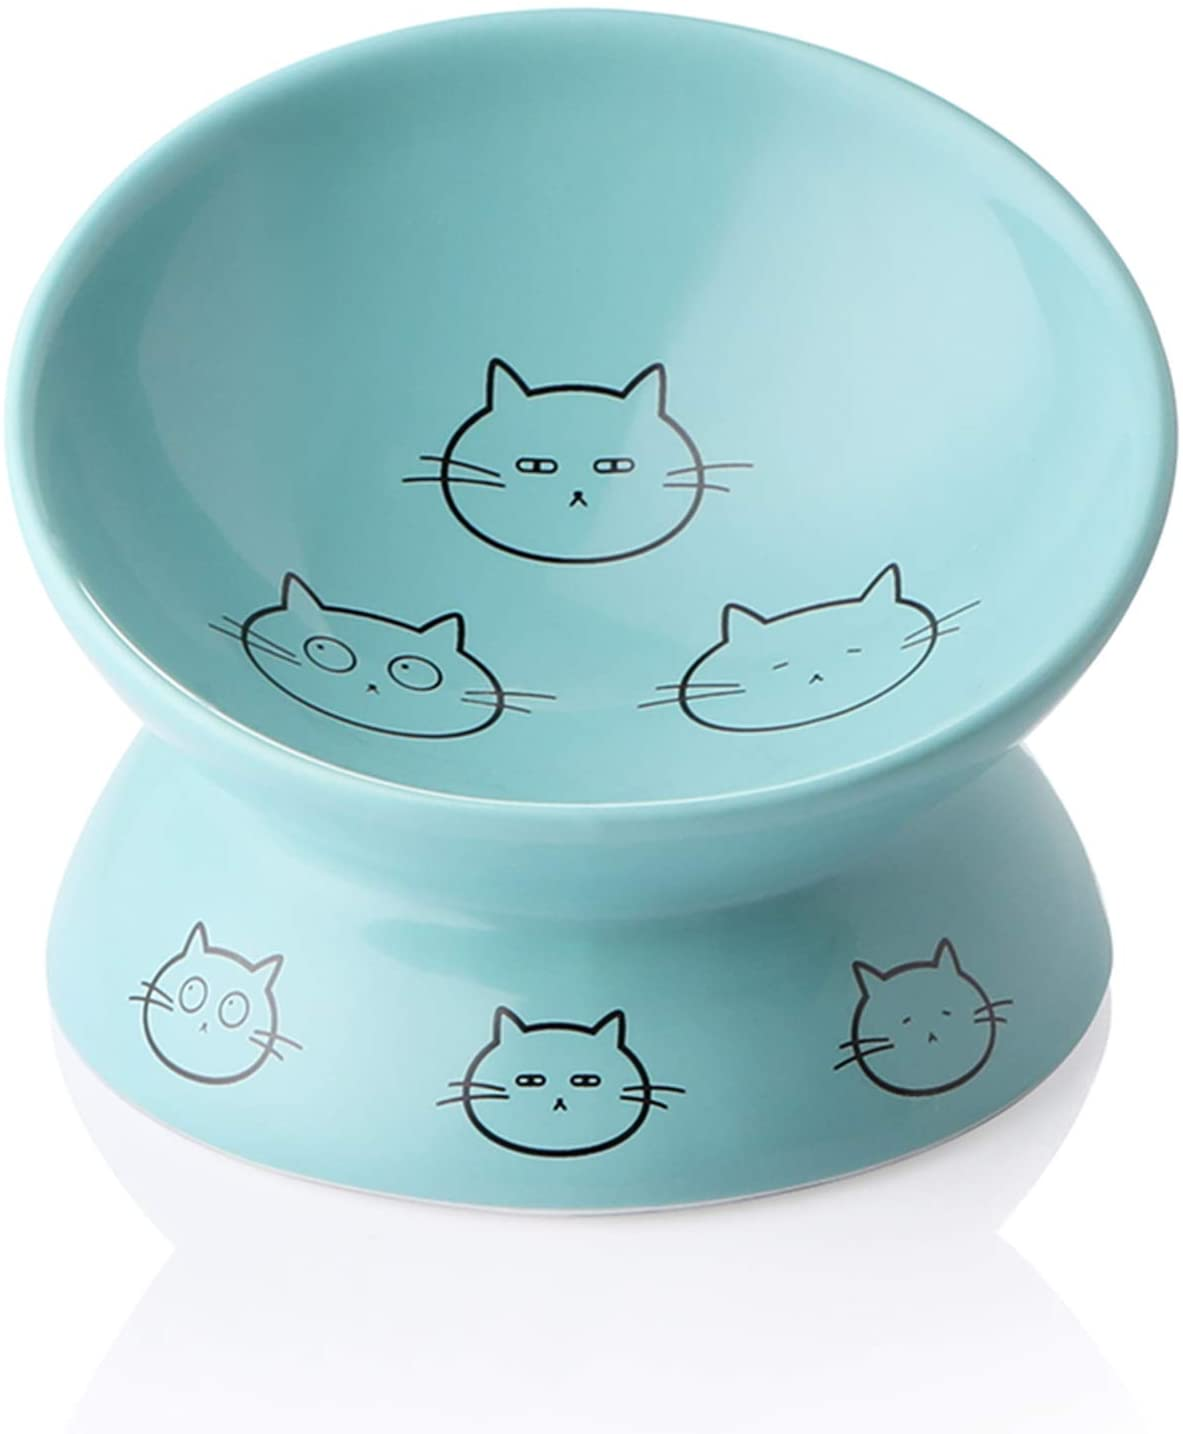 SWEEJAR Ceramic Raised Cat Bowls, Slanted Cat Dish Food or Water Bowls, Elevated Porcelain Pet Feeder Bowl Protect Cat's Spine, Stress Free, Backflow Prevention (Turquoise)